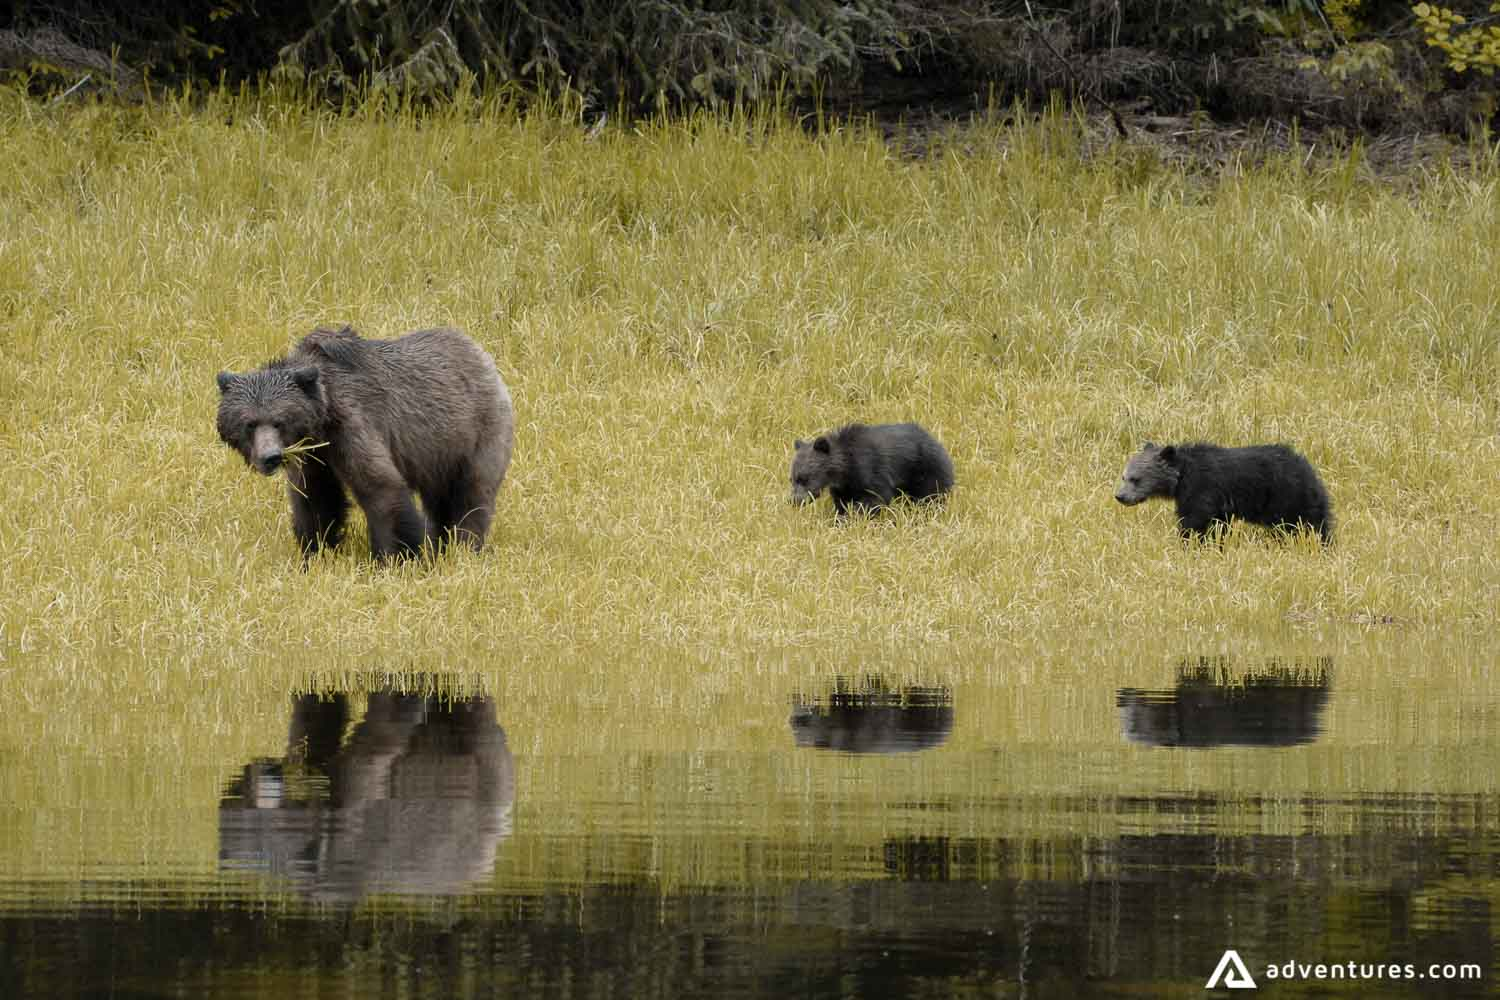 Grizzly bears eating grass